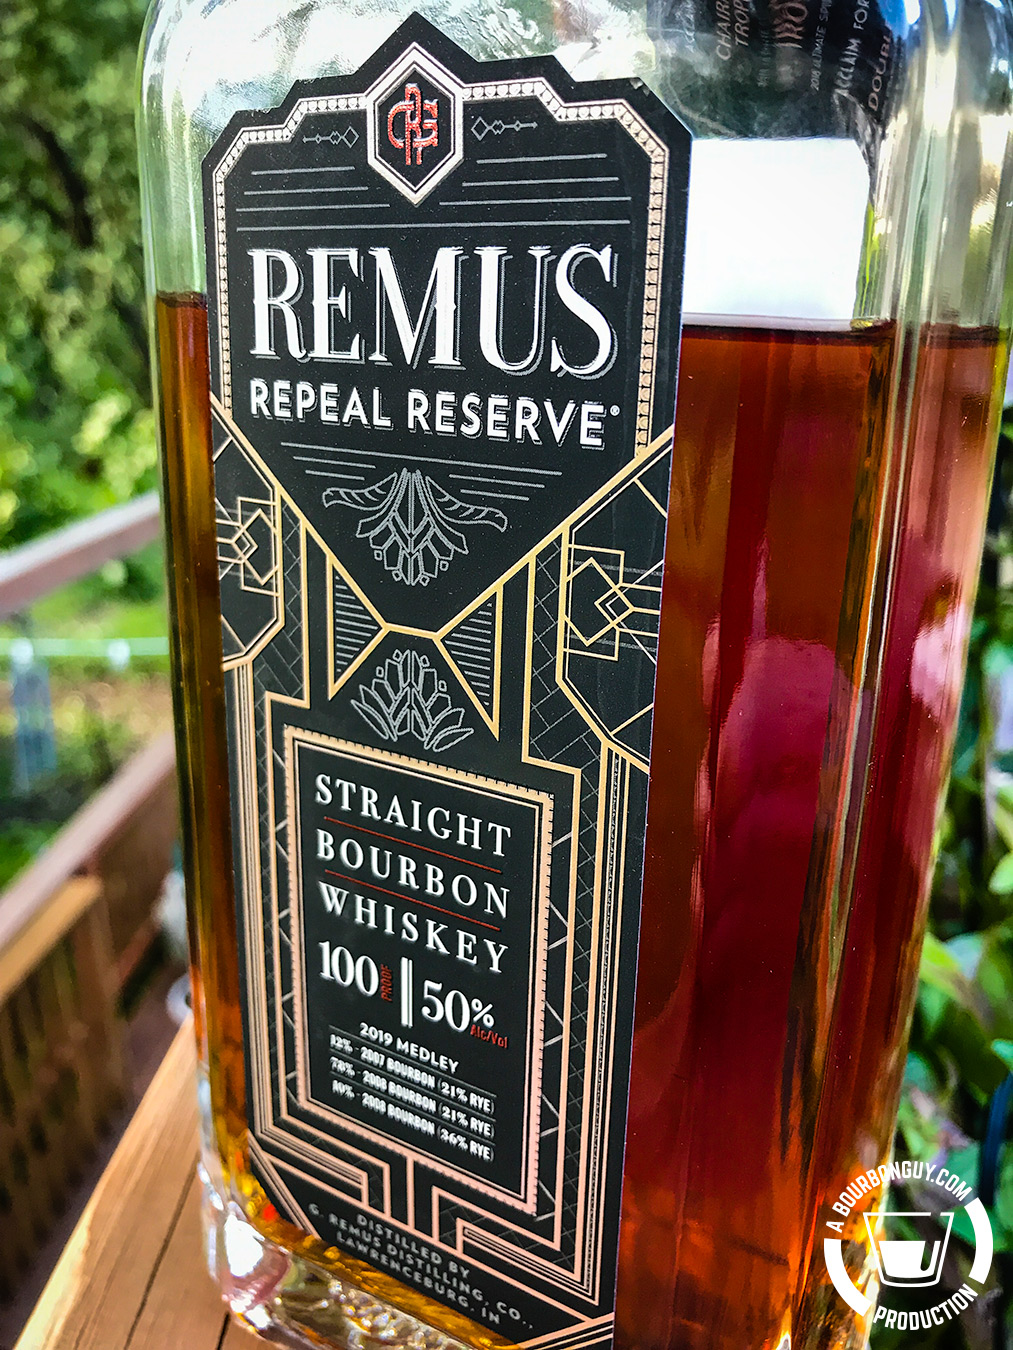 IMAGE: Front label of Remus Repeal Reserve, 2019 edition. 100 proof and made from 11 and 12 year old MGP bourbons.